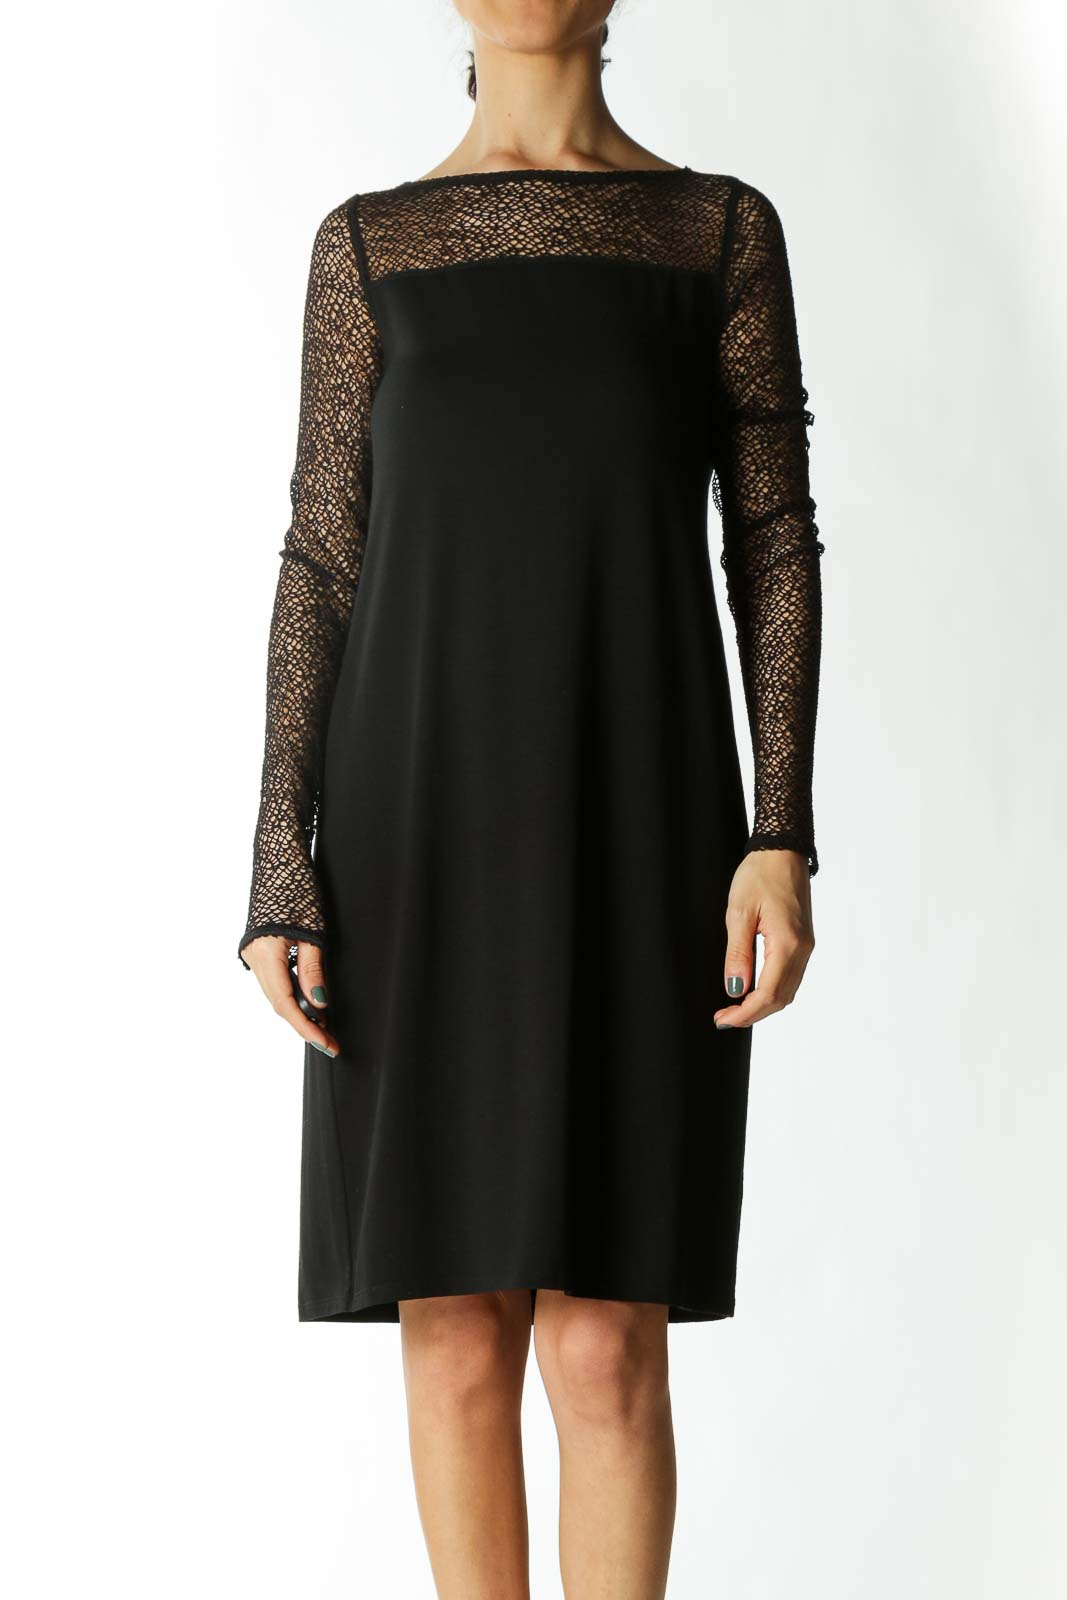 Black Cocktail Dress with Fishnet Detail